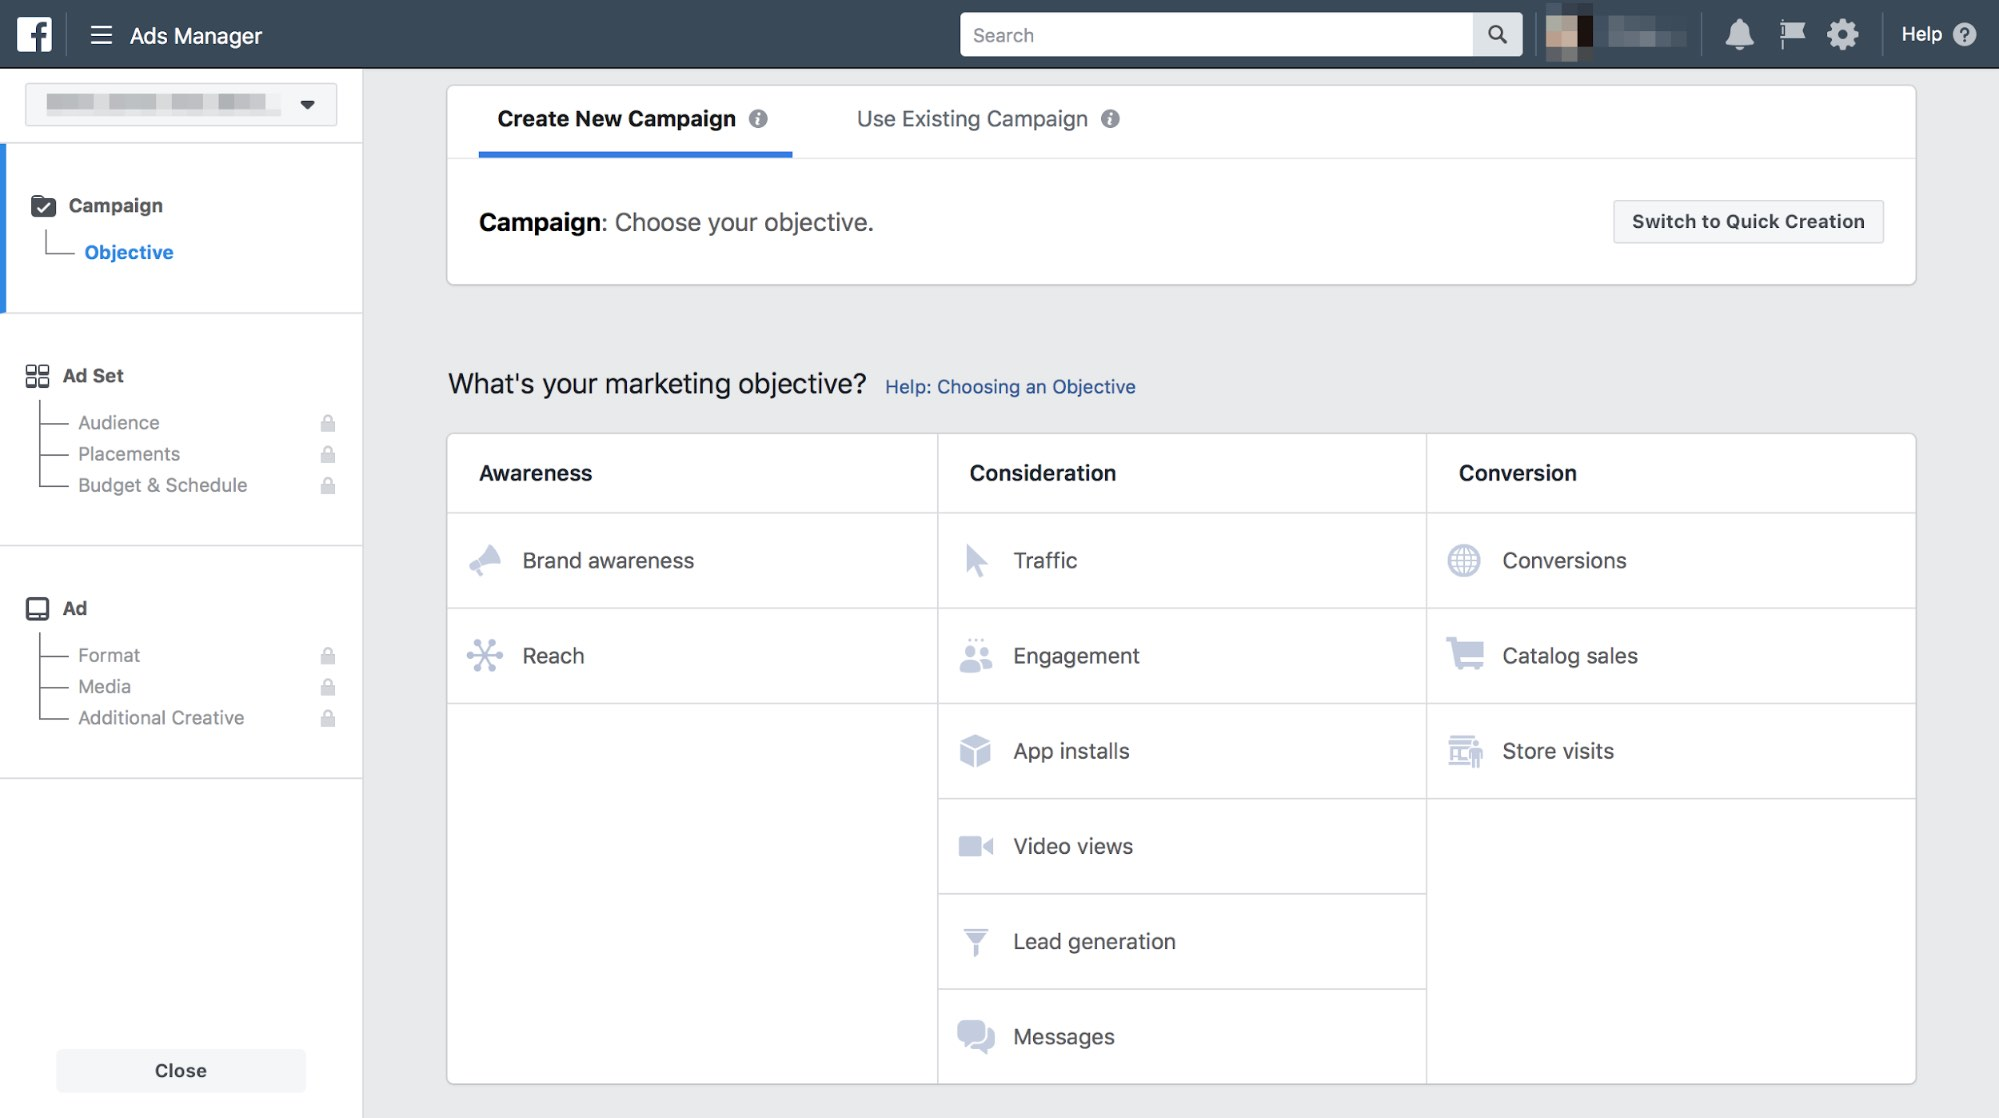 Objective ของ Facebook Ads